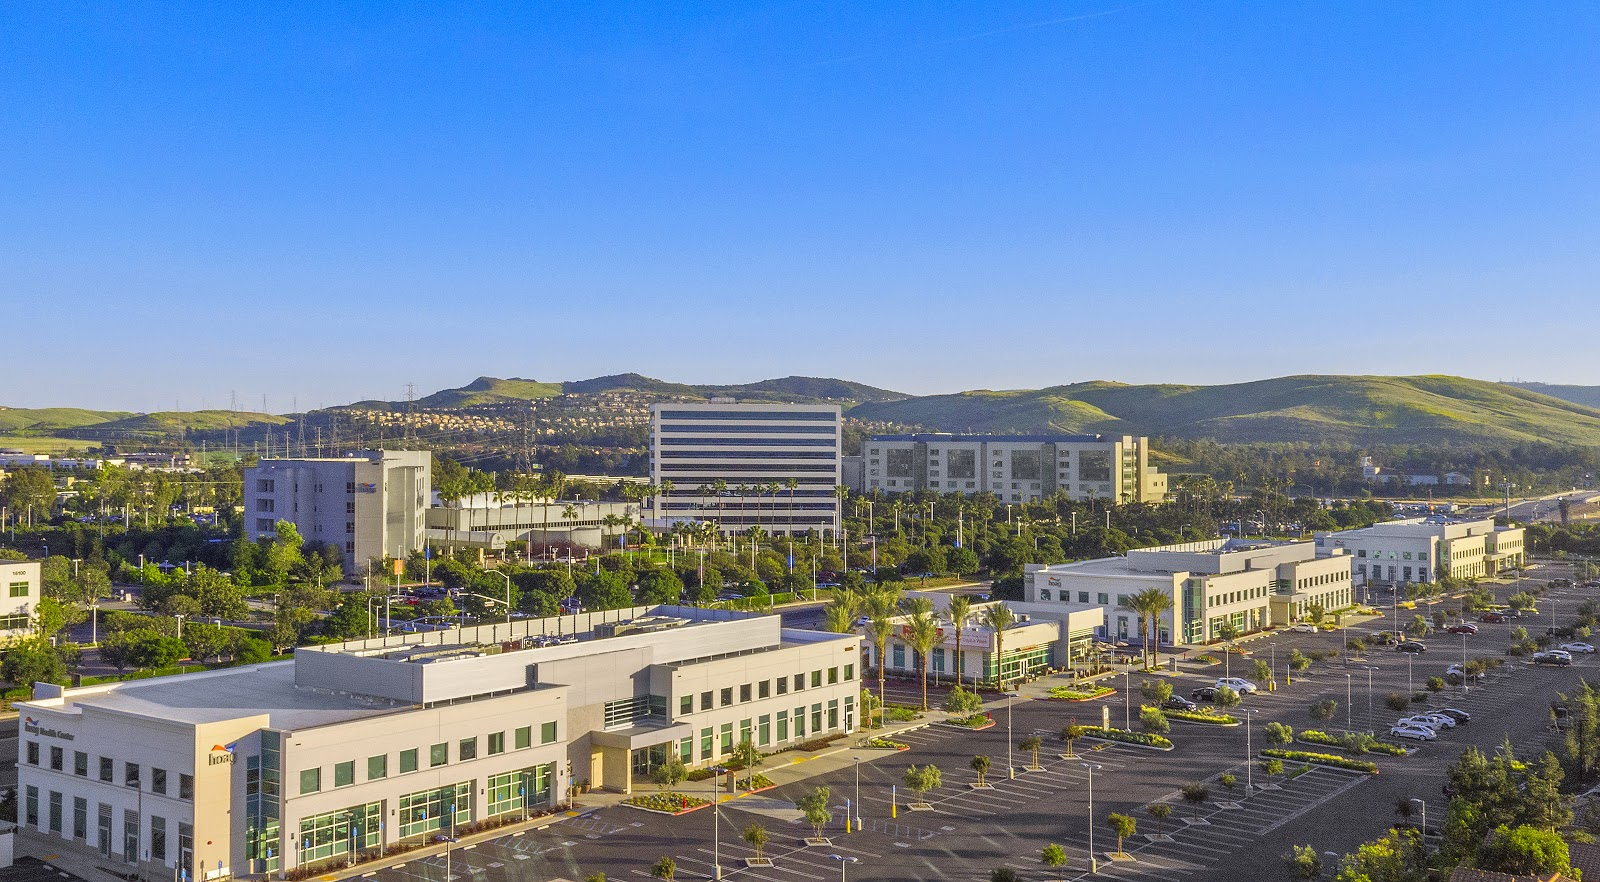 Visit Our Two New Locations in Irvine, CA